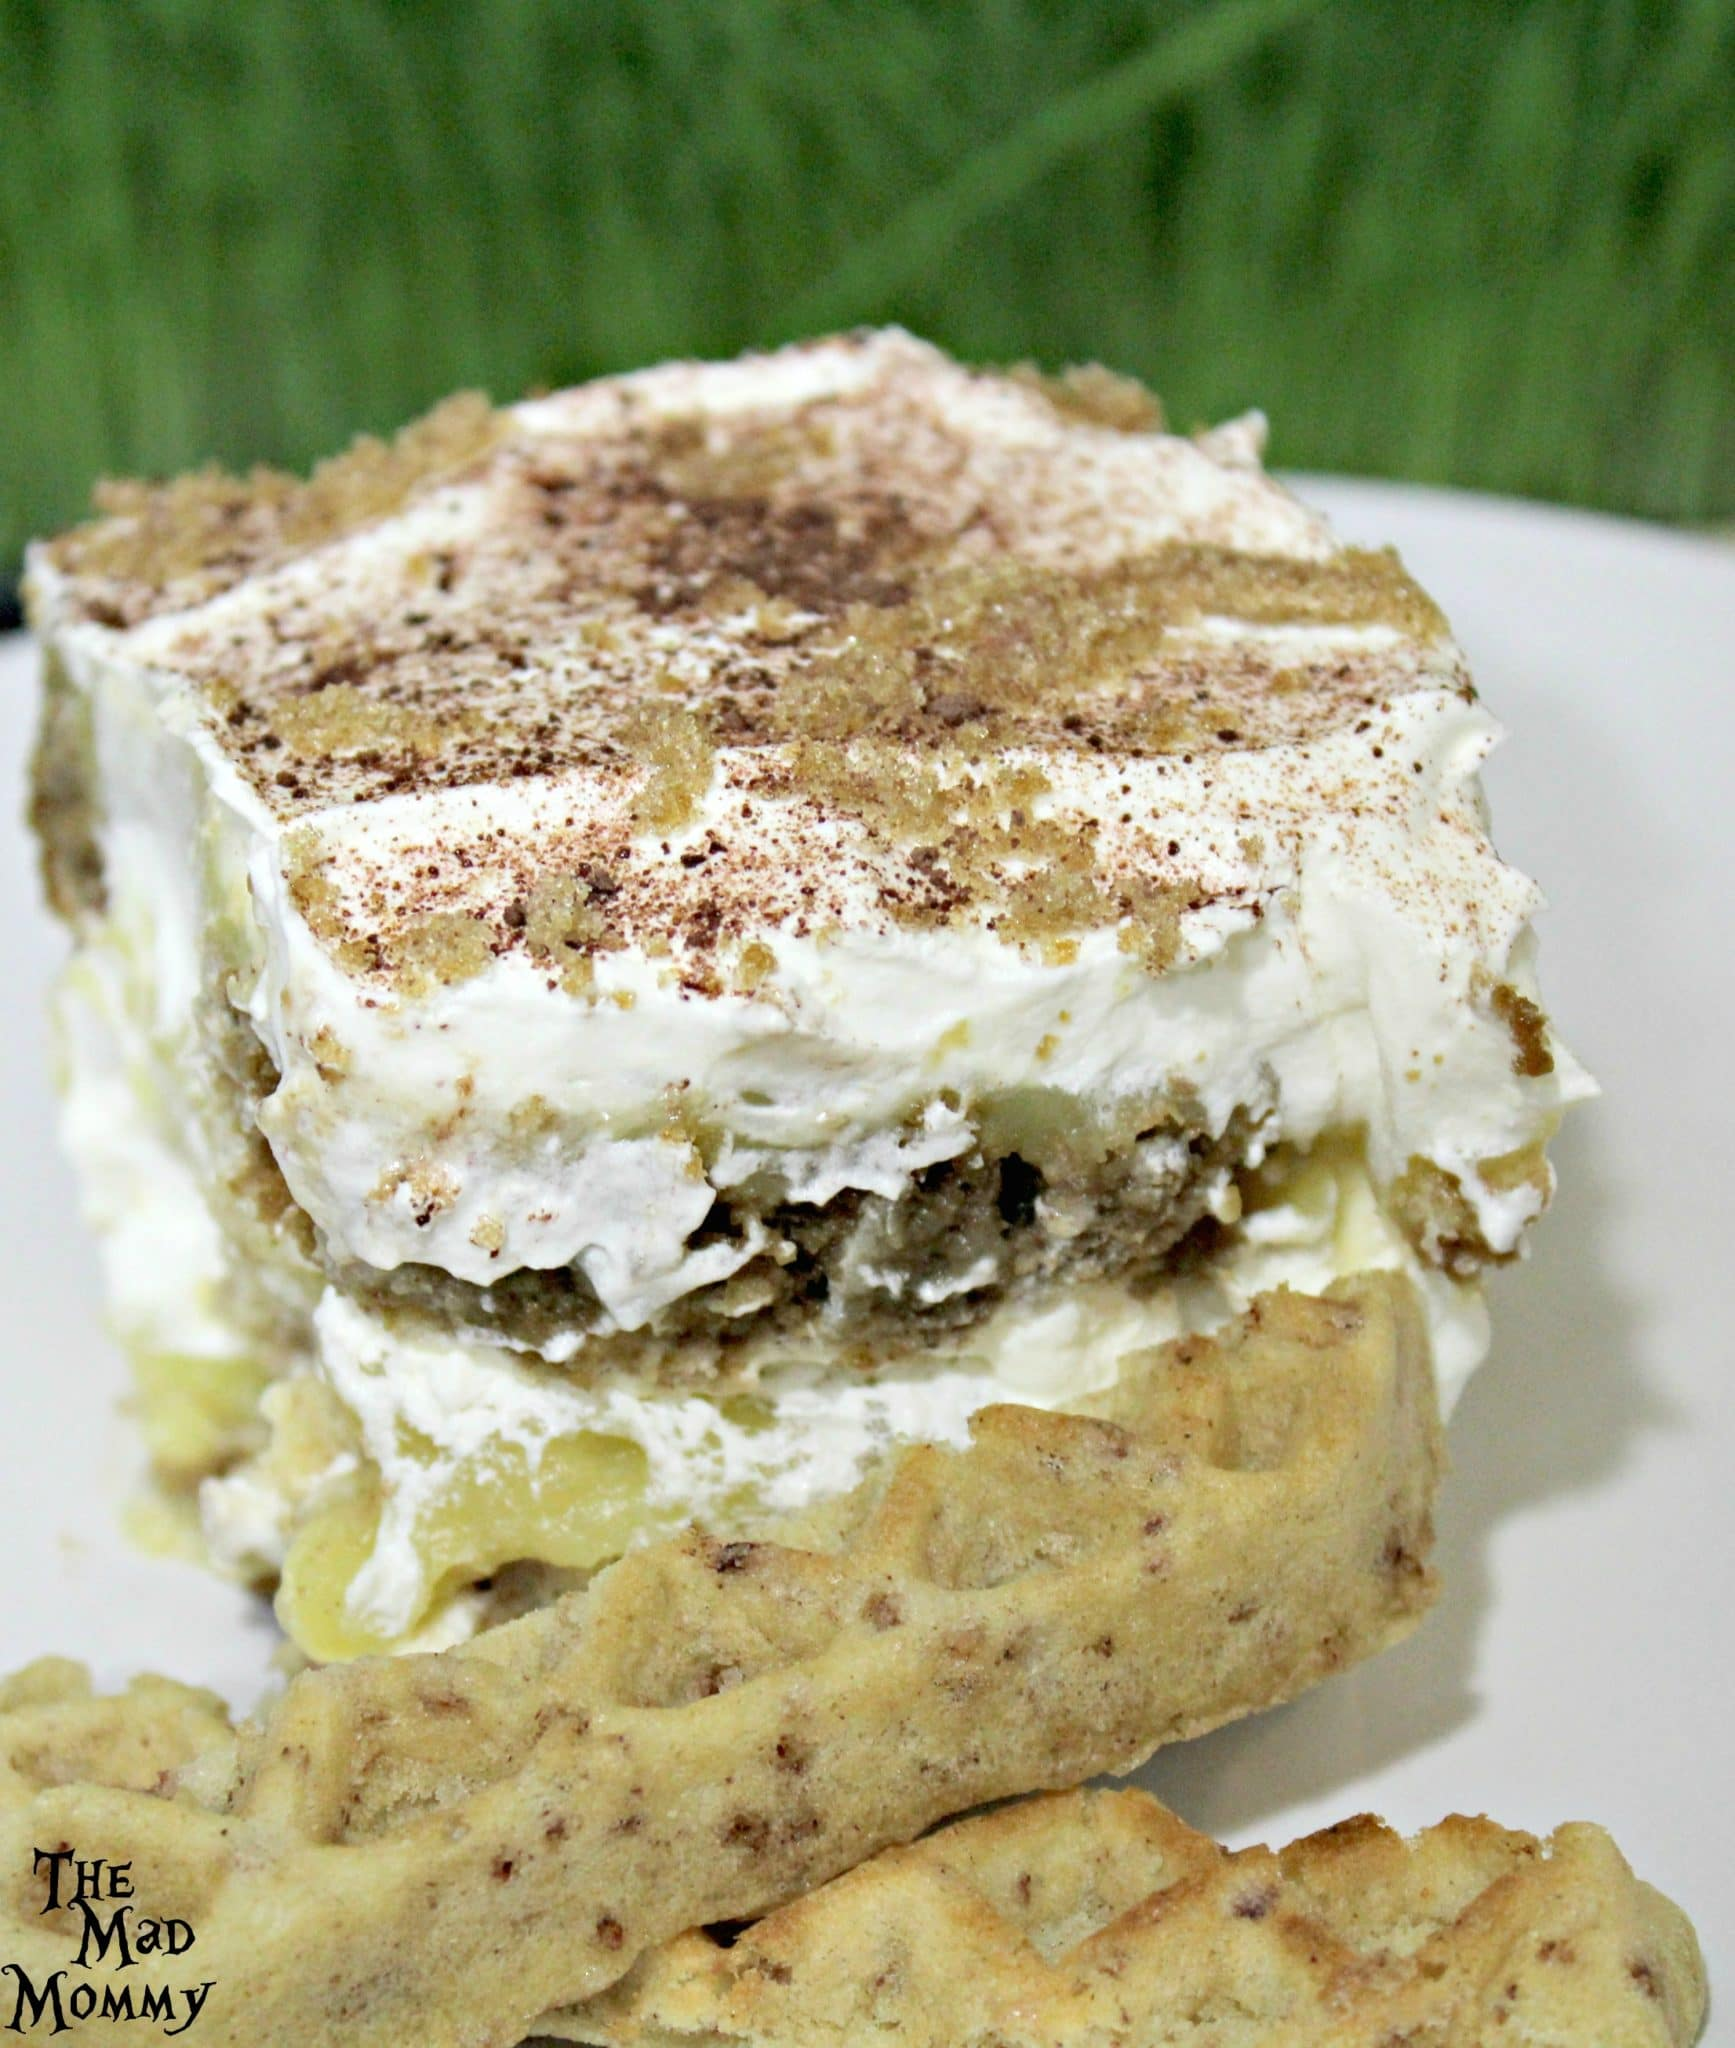 Delicious and simple Eggo Waffle Tiramisu is the perfect dessert ANYTIME! #LeggoMyEggo #HearTheNews #ad